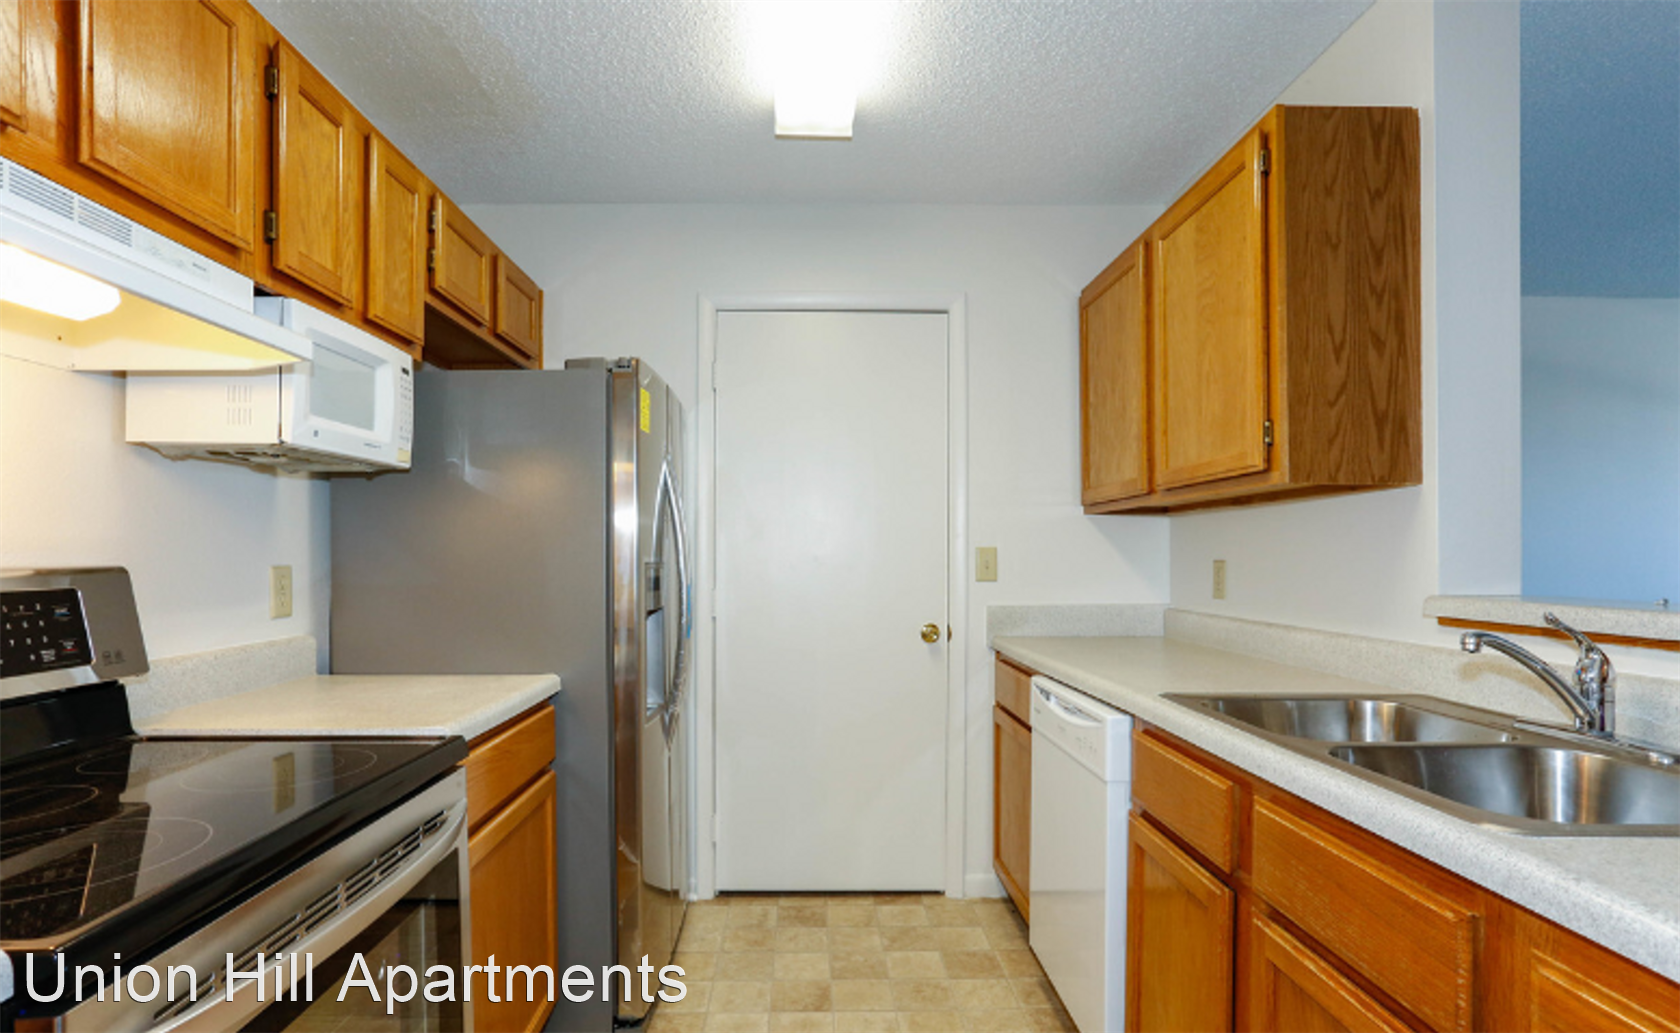 Apartments Near Wright State Union Hill Apartments for Wright State University Students in Dayton, OH